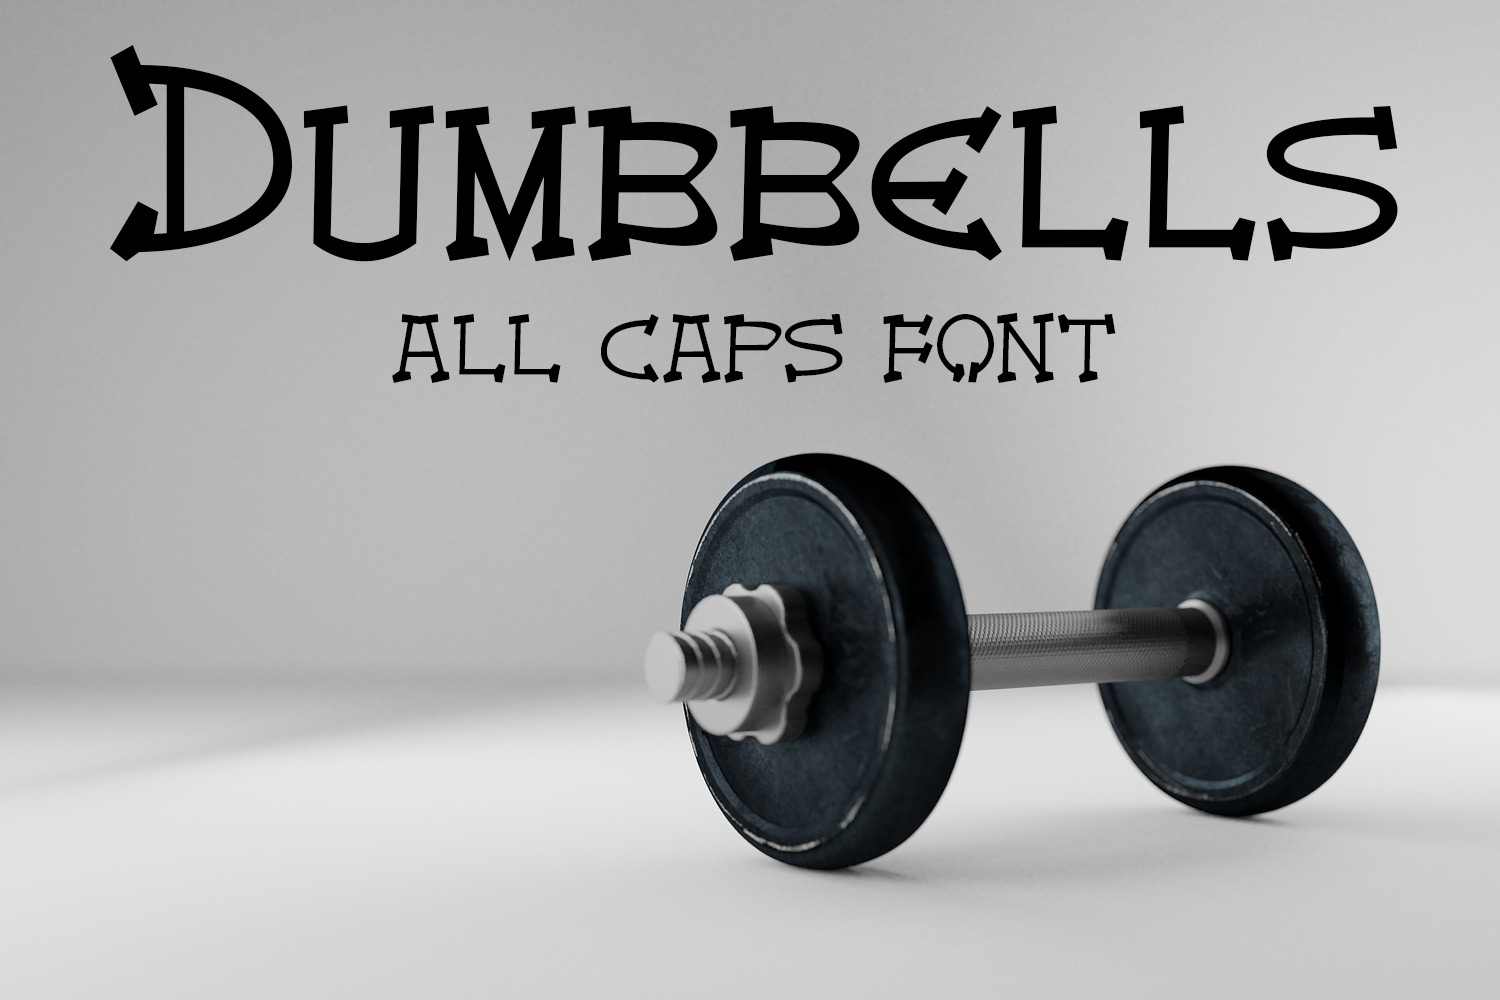 EP Dumbbells - All Caps Font example image 1